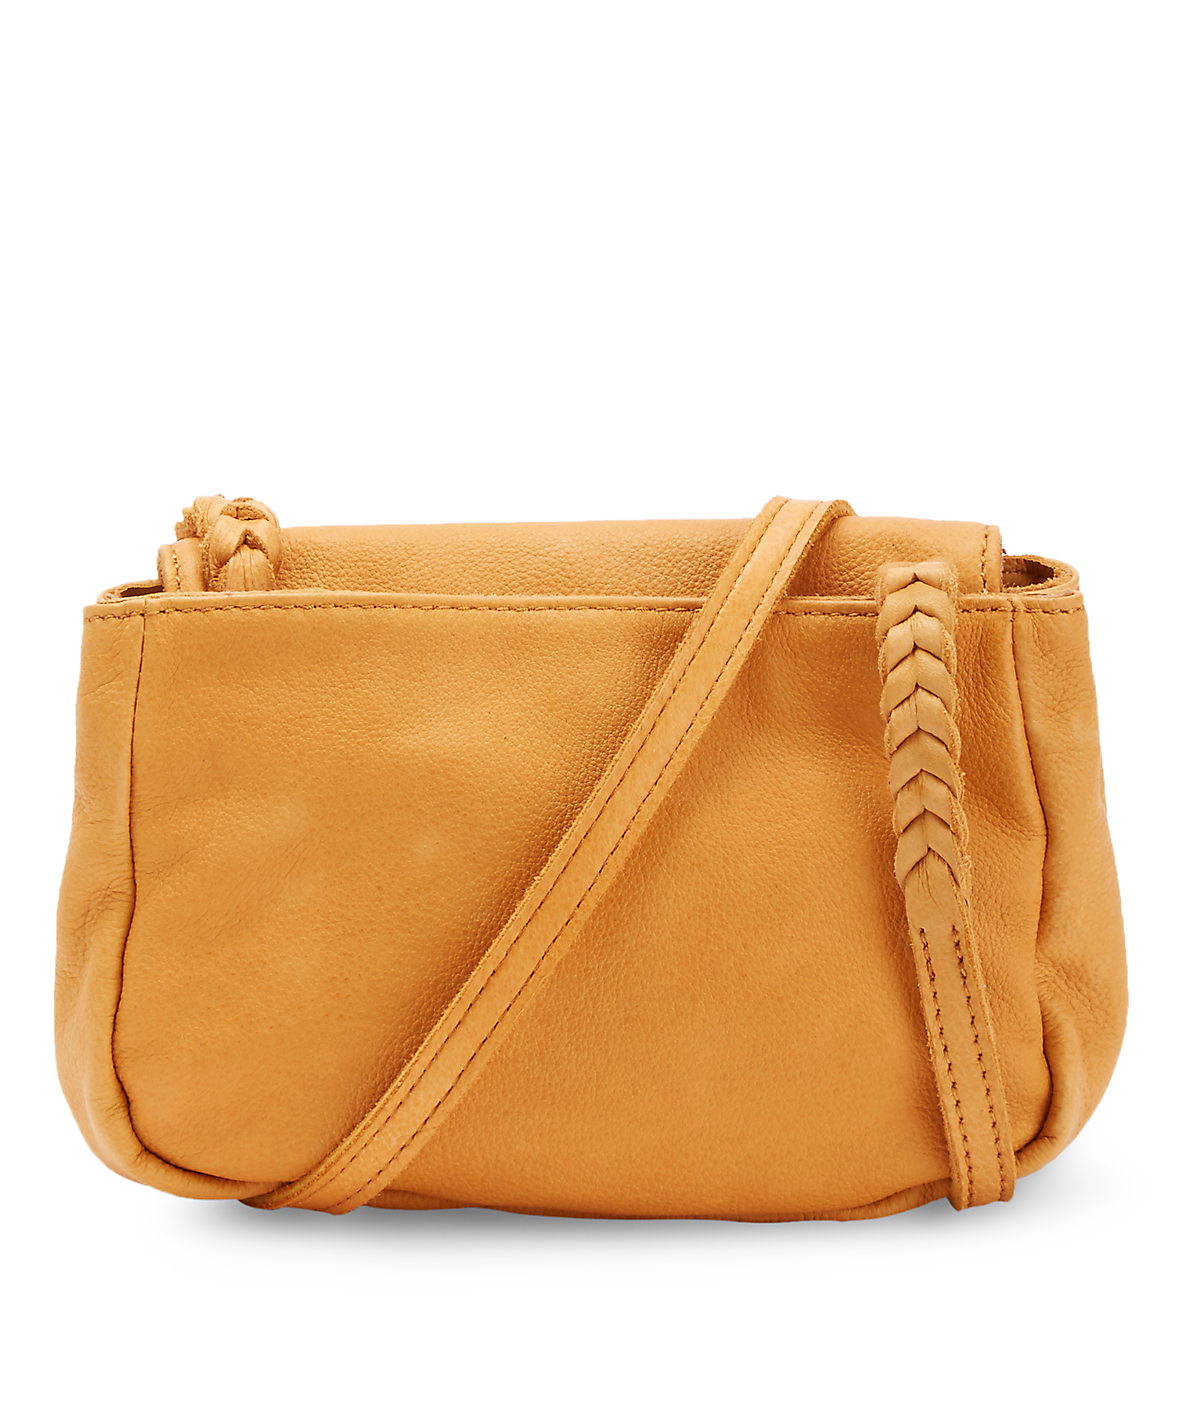 Kawai shoulder bag from liebeskind